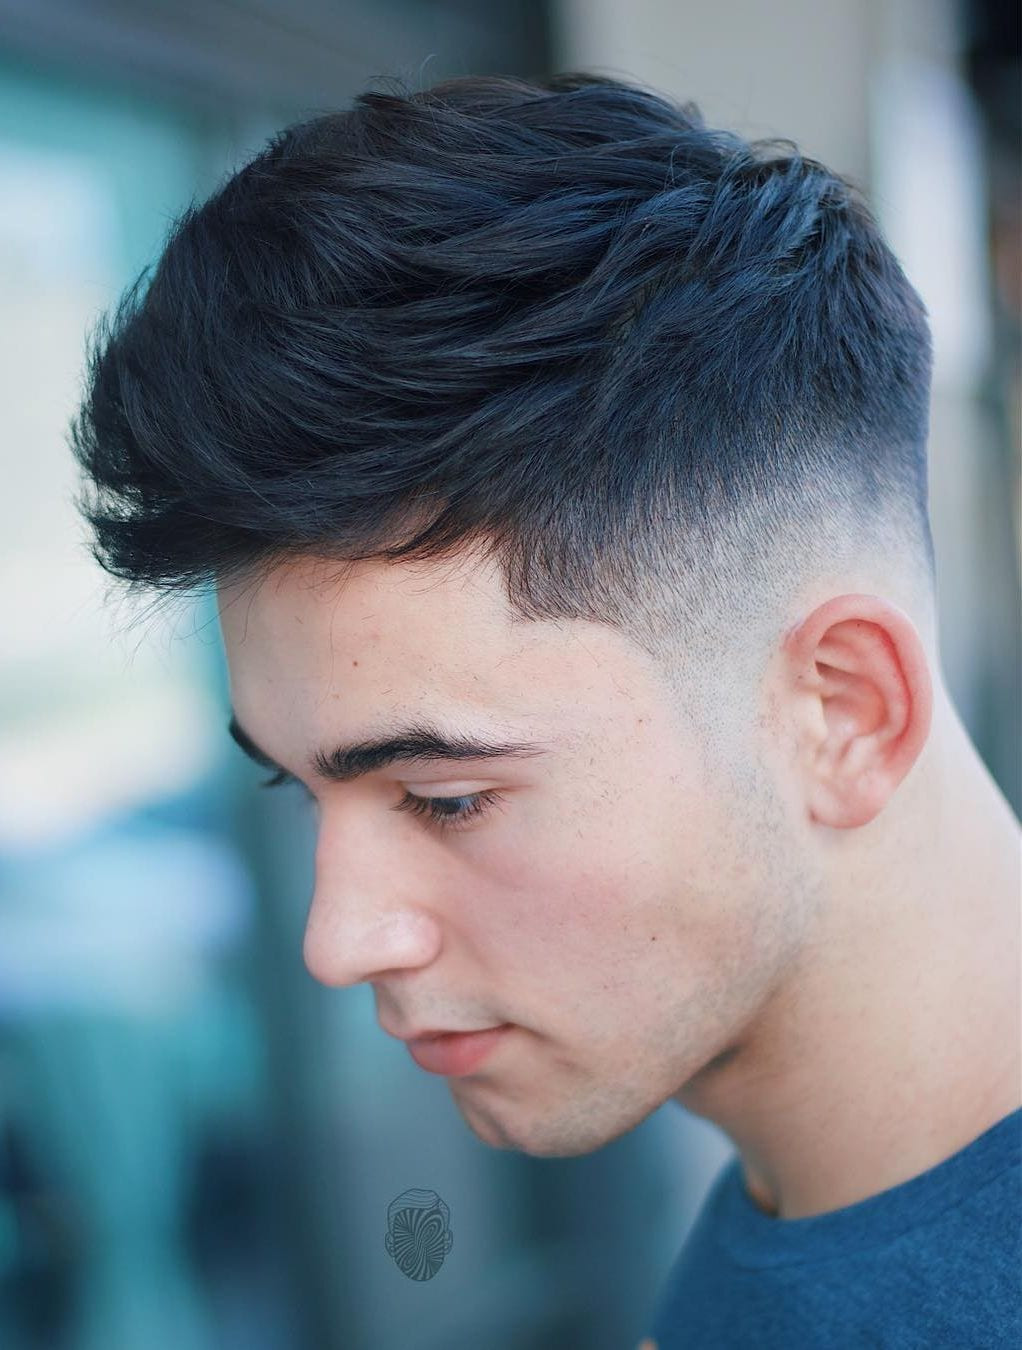 Best ideas about Hairstyles For Boys 2019 . Save or Pin 50 Best Hairstyles for Teenage Boys The Ultimate Guide 2019 Now.